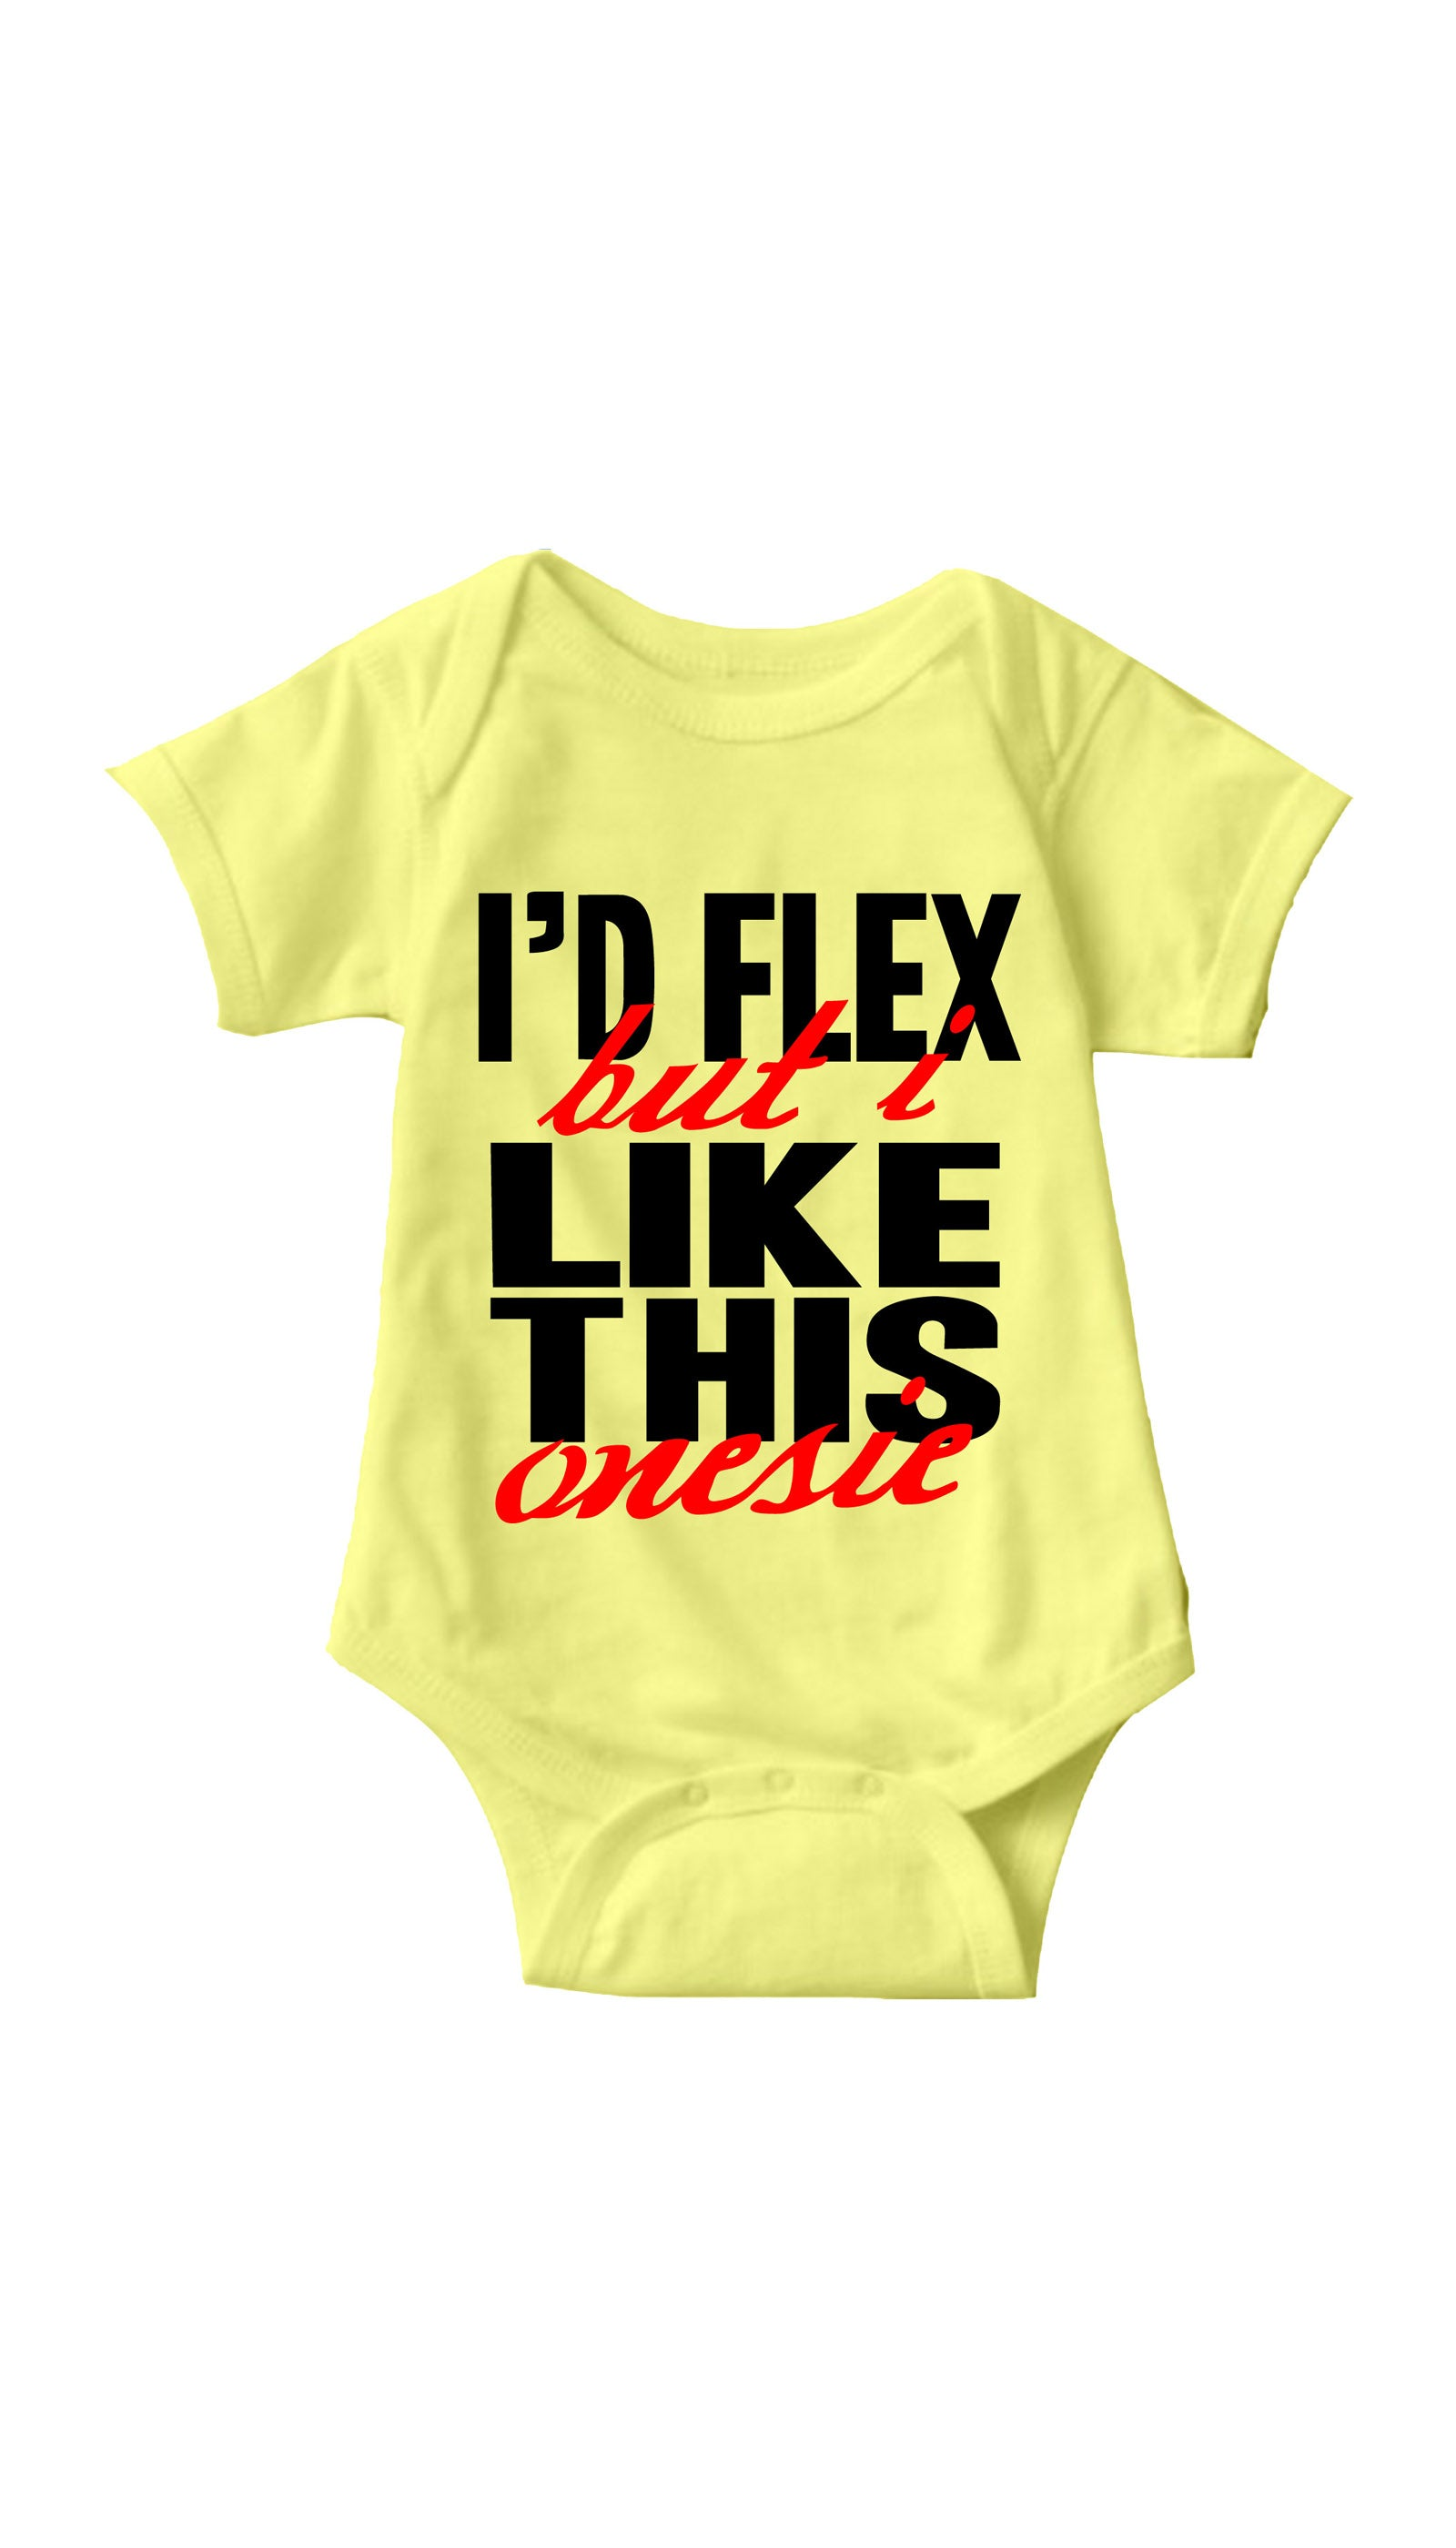 I'd Flex But I Like This Onesie Yellow Infant Onesie| Sarcastic ME